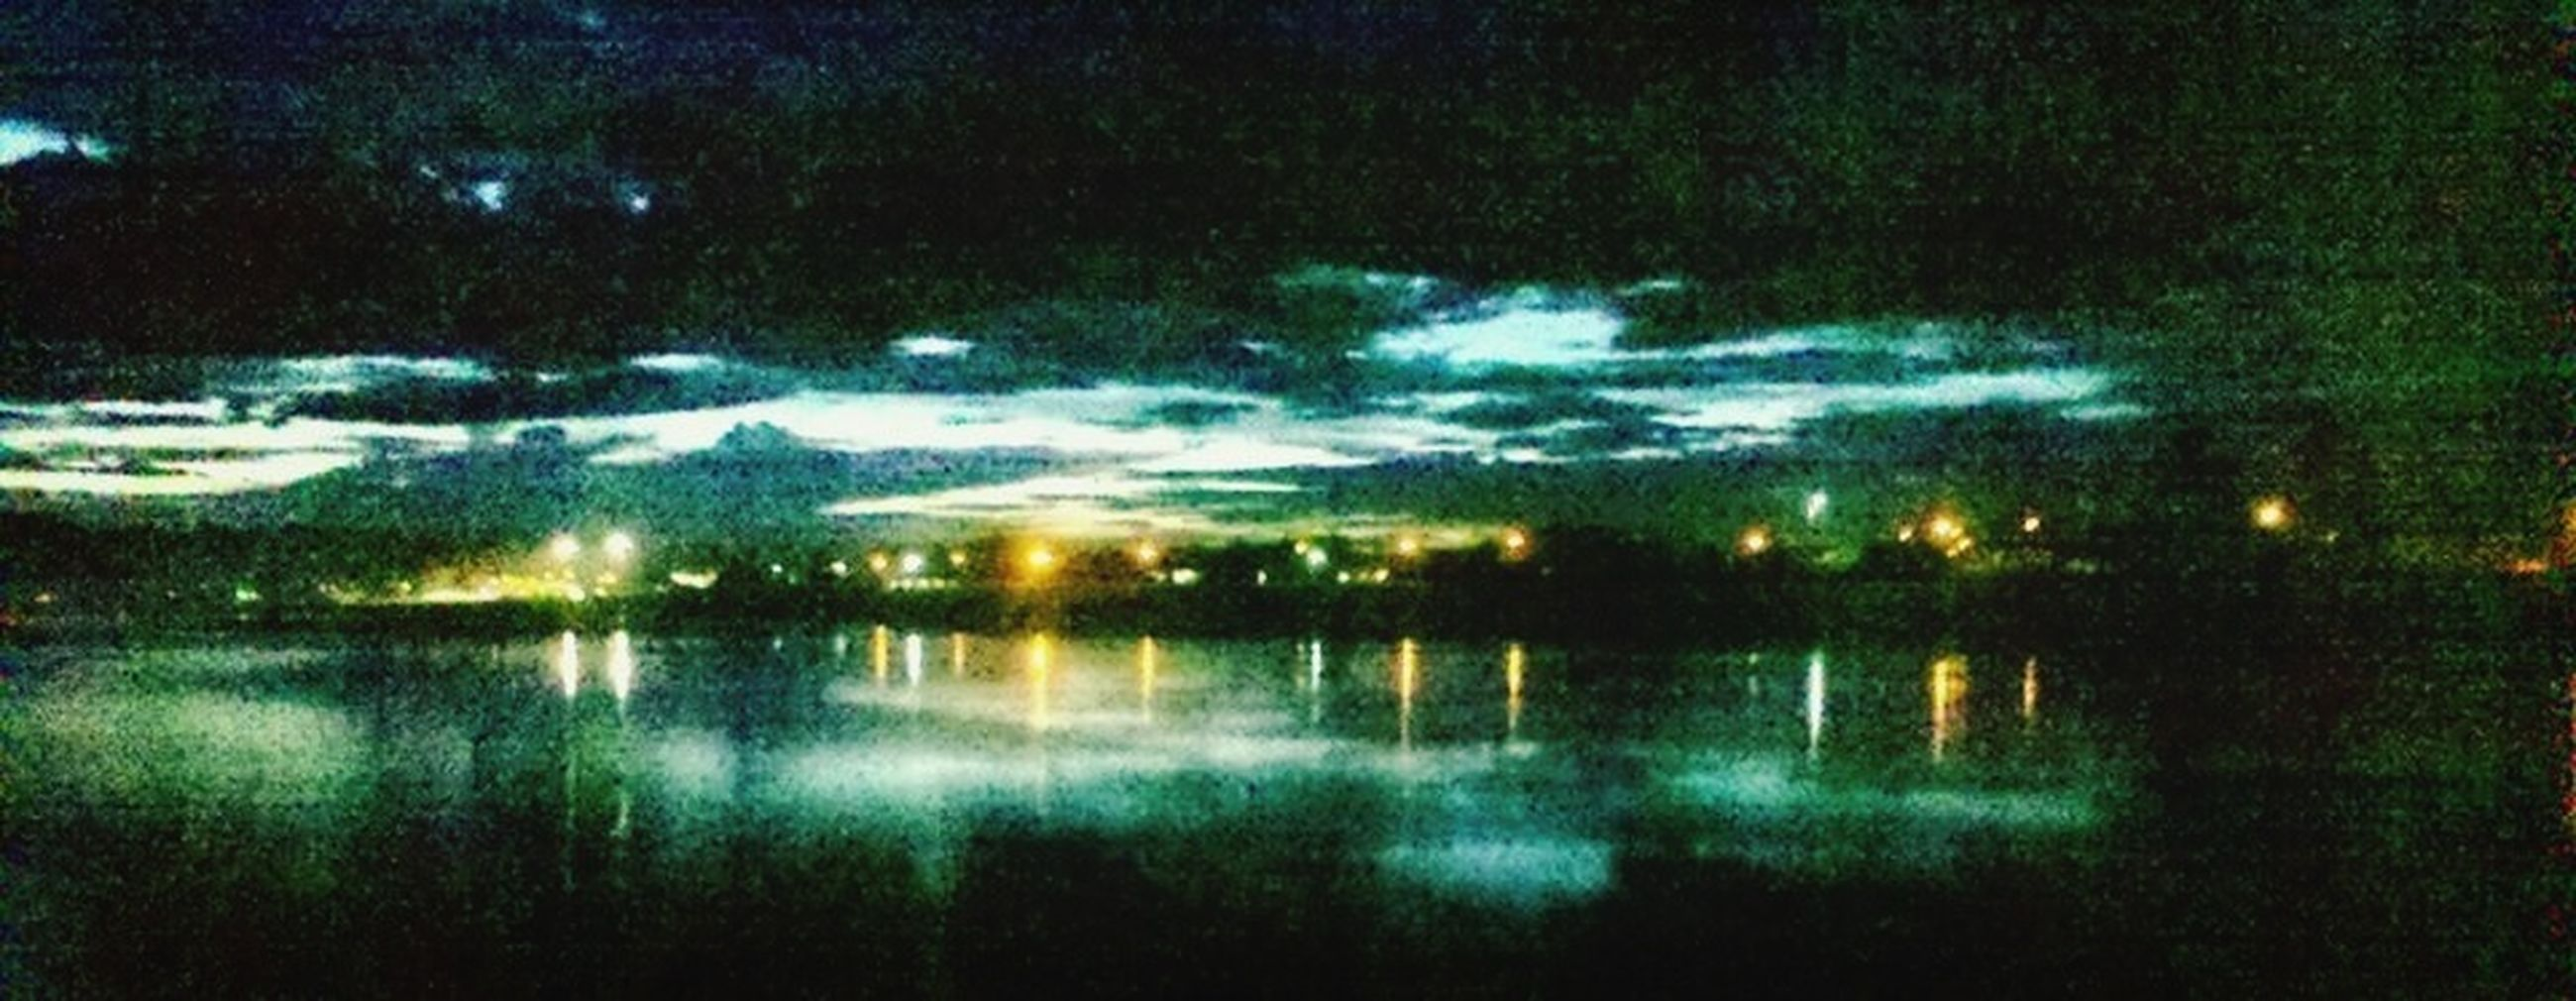 water, reflection, lake, tranquility, waterfront, tranquil scene, beauty in nature, nature, scenics, standing water, night, river, outdoors, no people, idyllic, sky, pond, wet, tree, calm